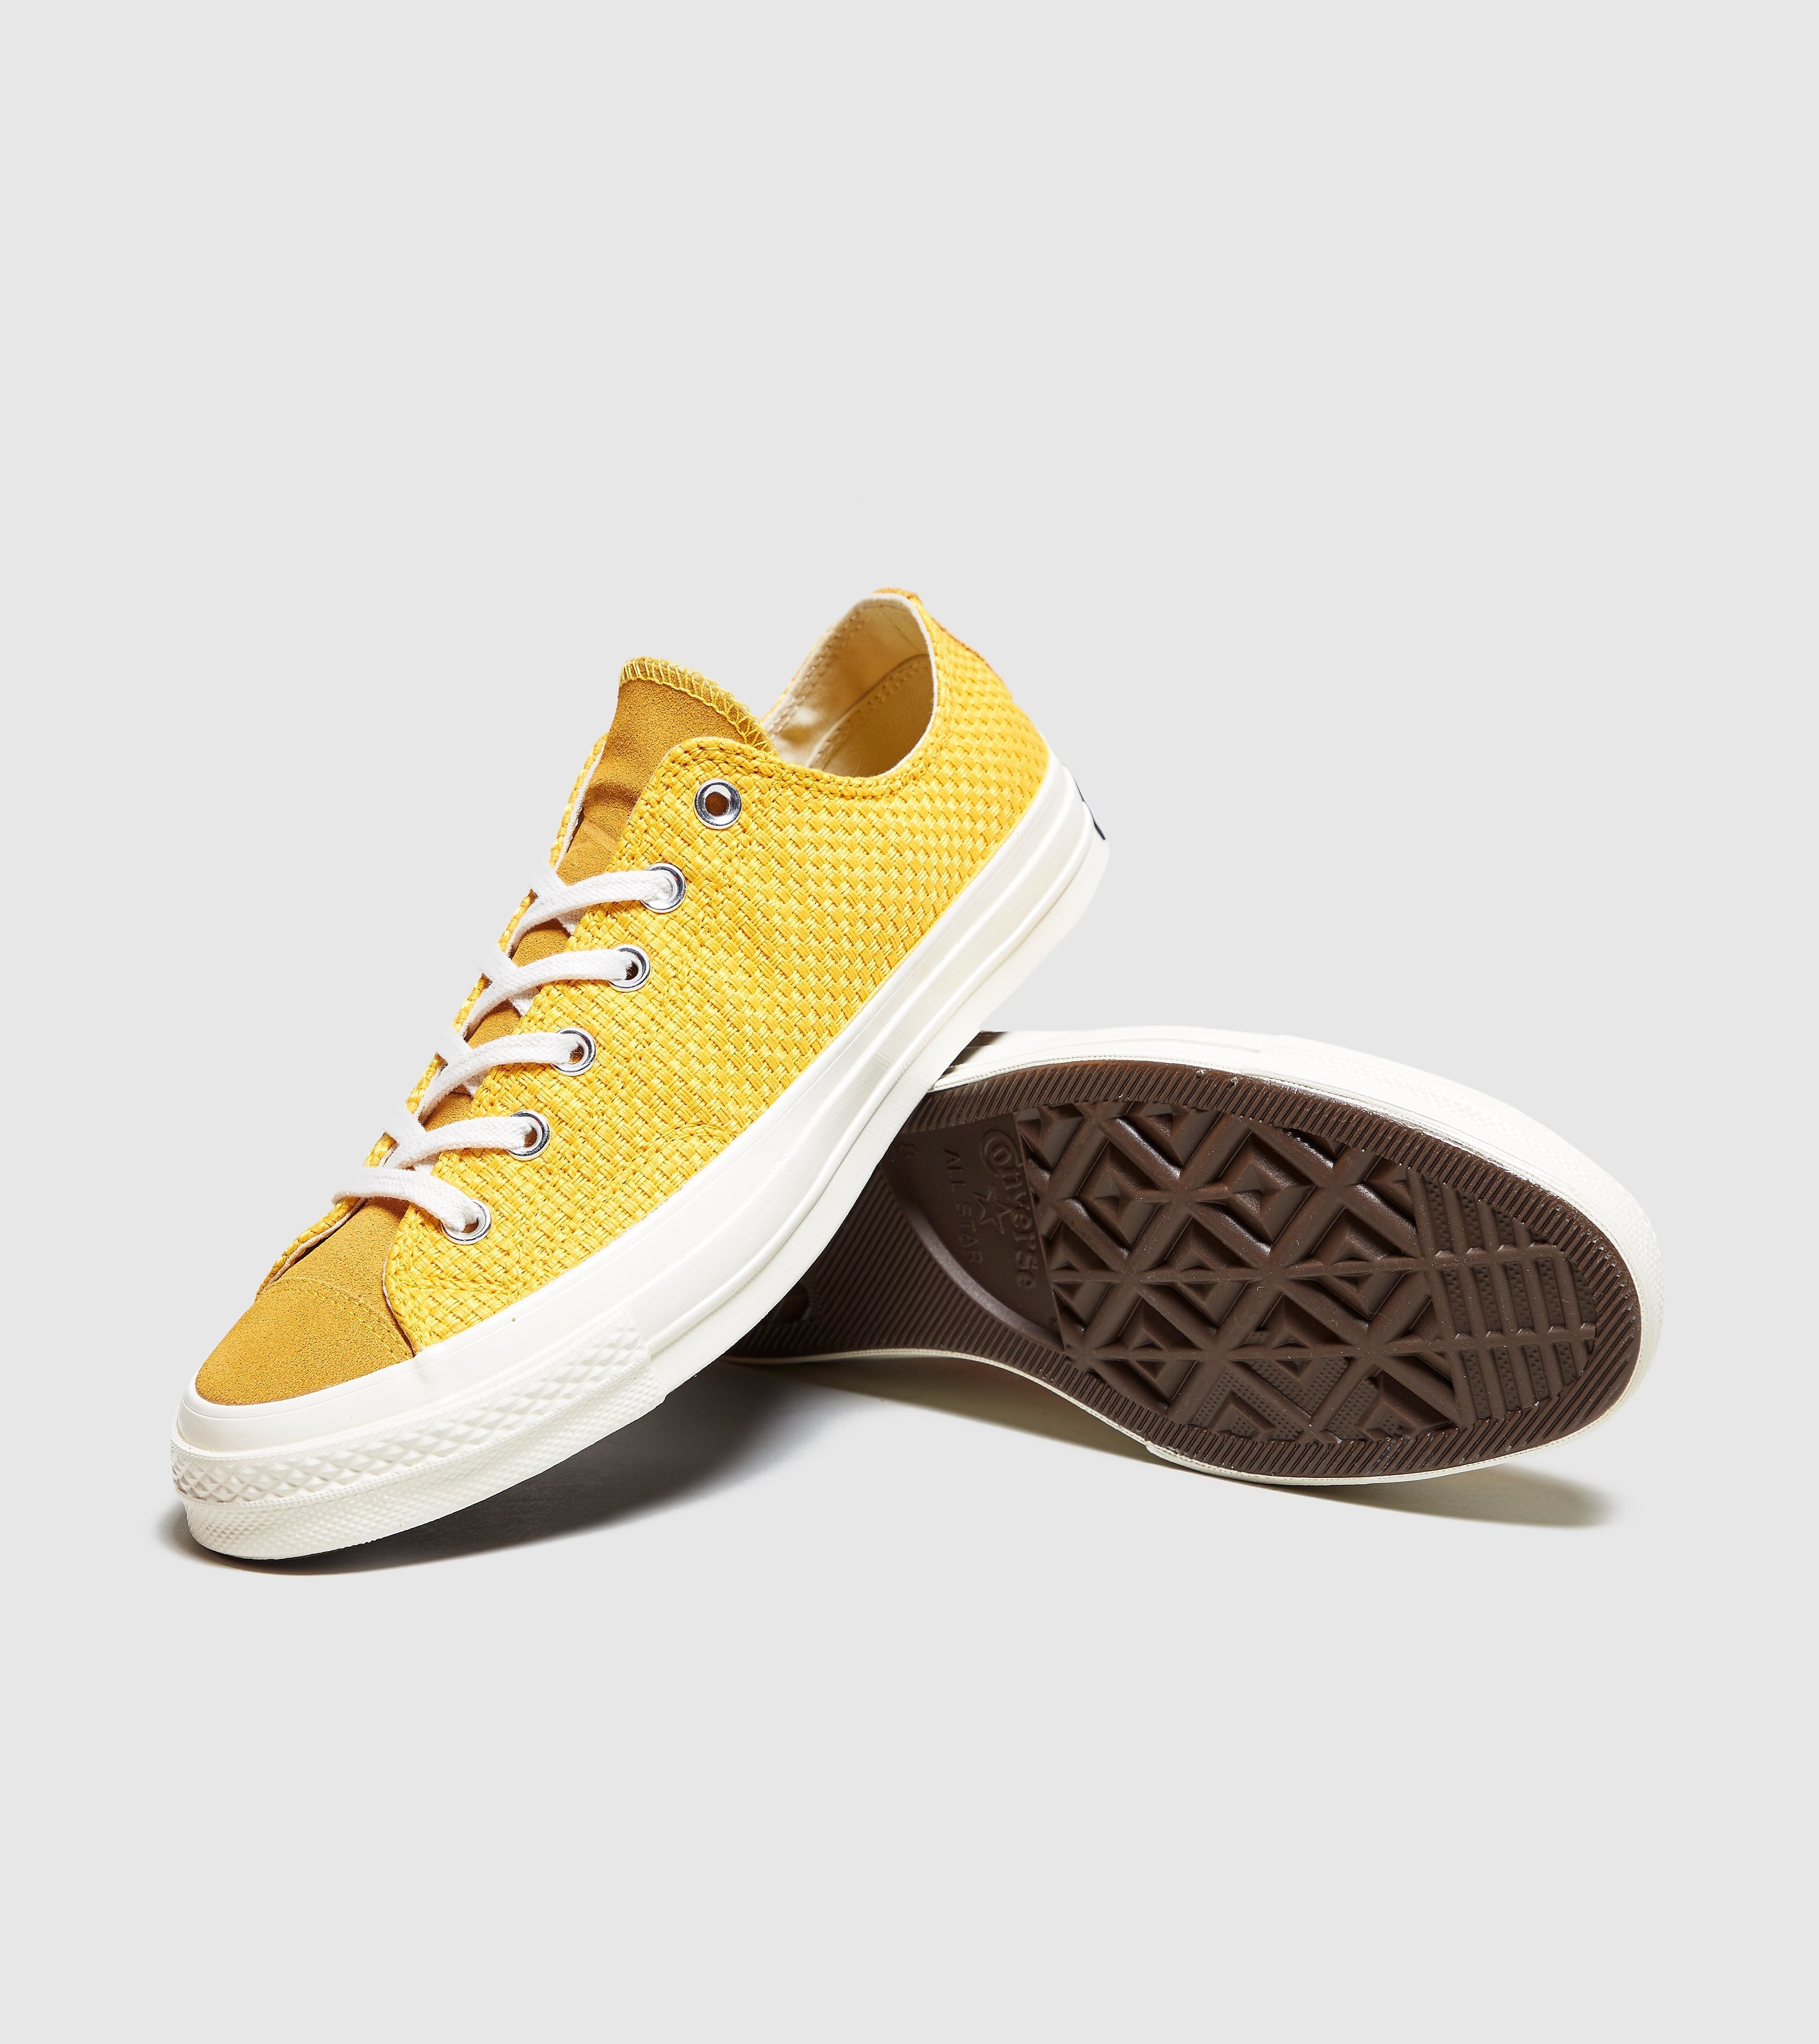 Converse All Star '70 OX Woven